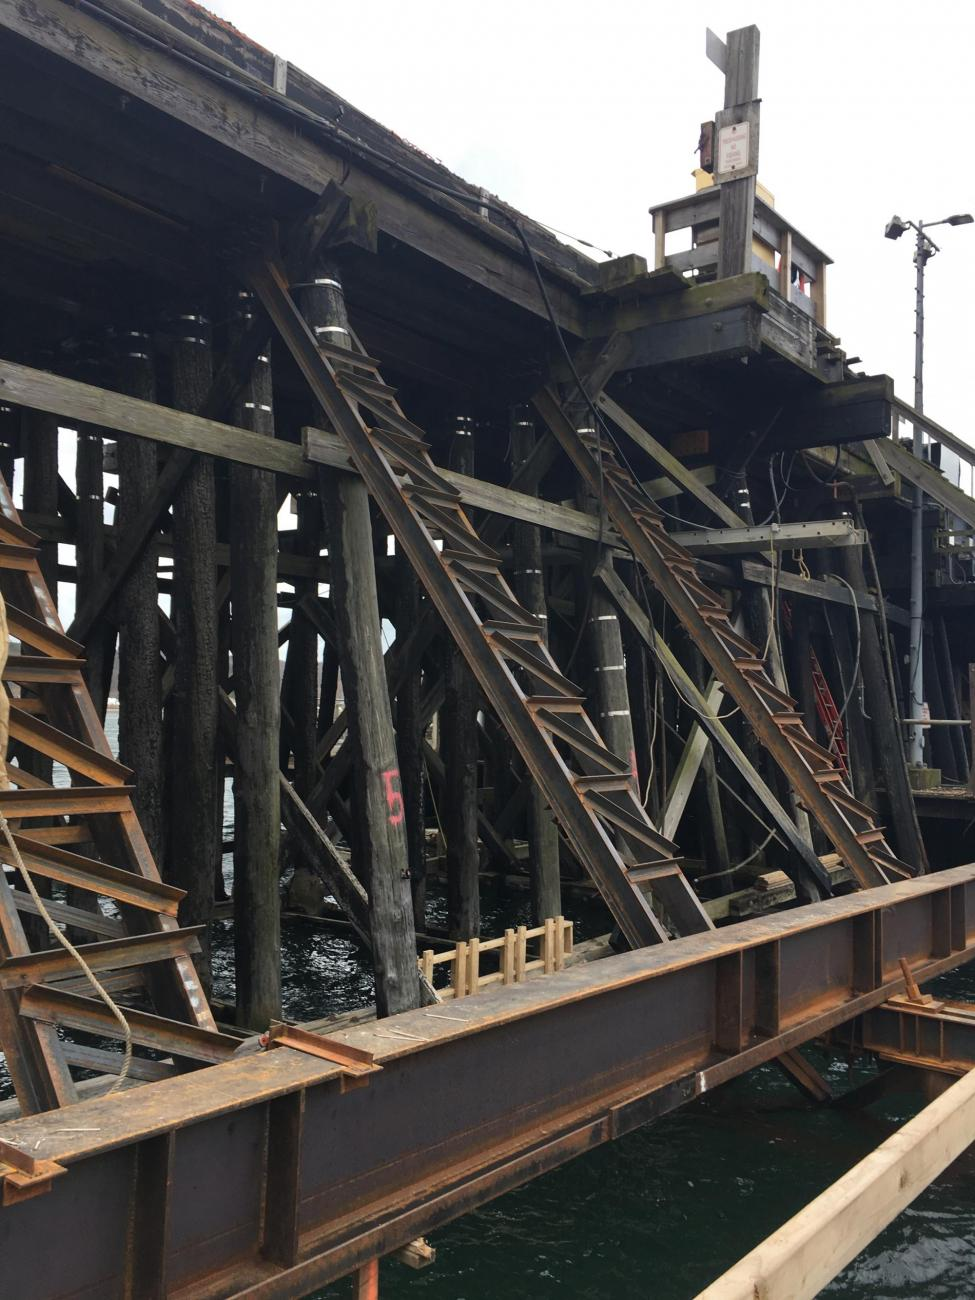 Ground level view of the existing timber trestle underneath the Gloucester Drawbridge.